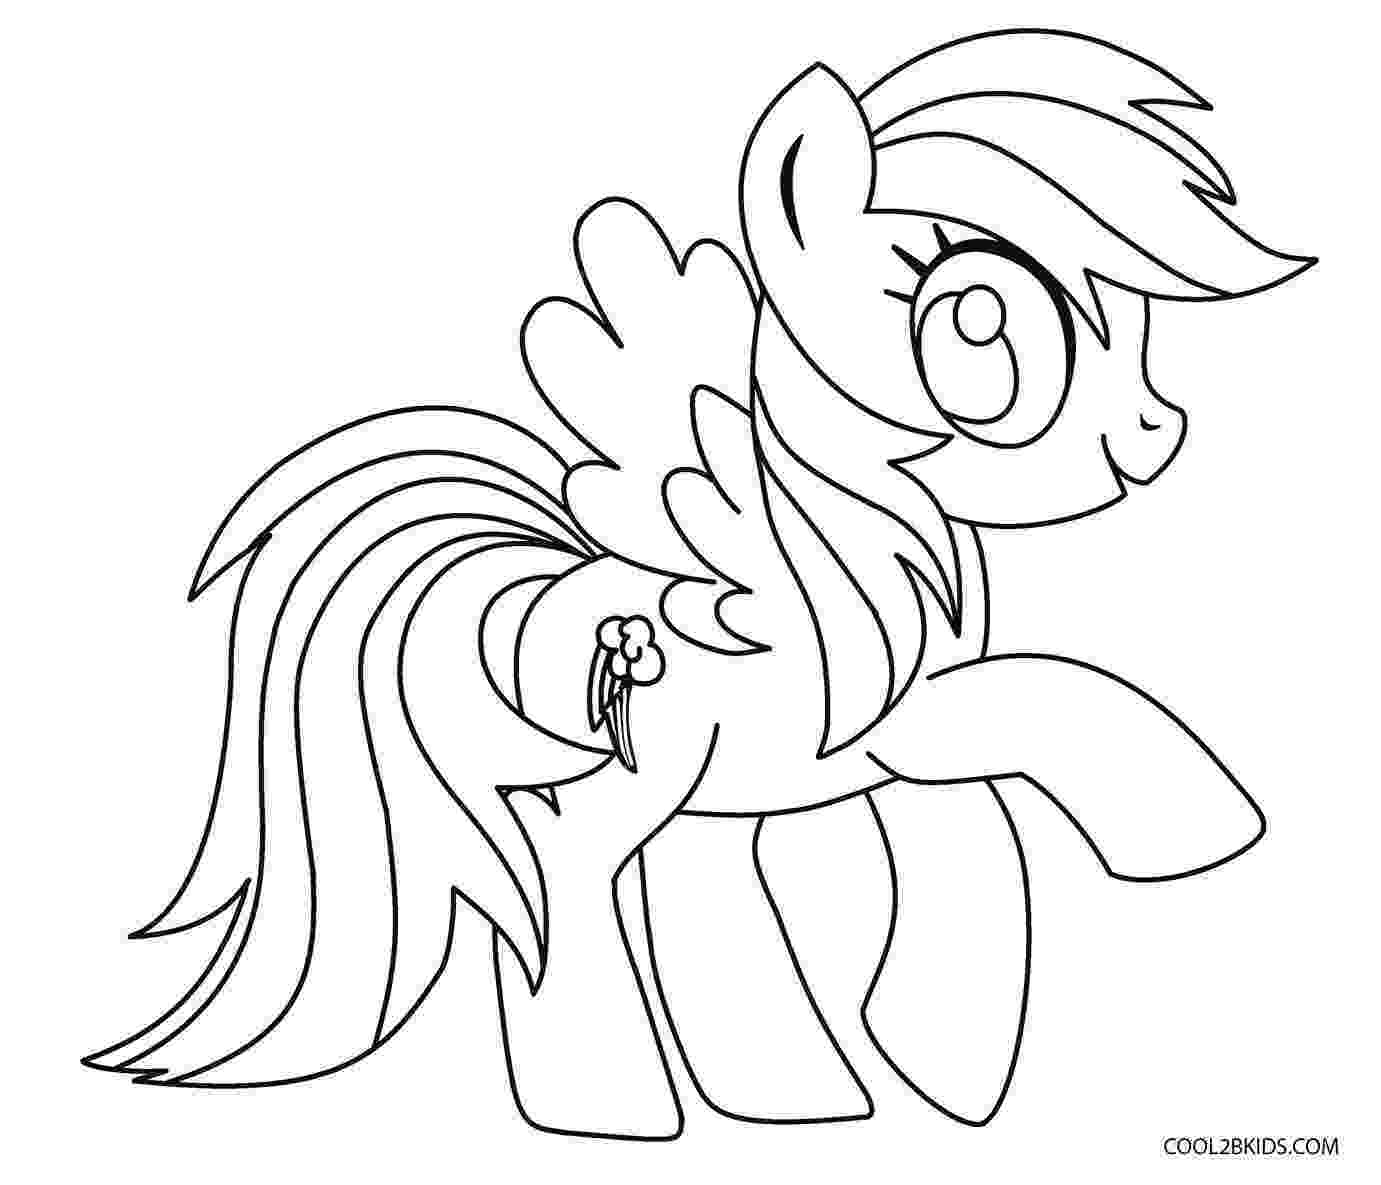 free my little pony coloring pages to print my little pony the movie coloring pages to download and to my pages little coloring print free pony